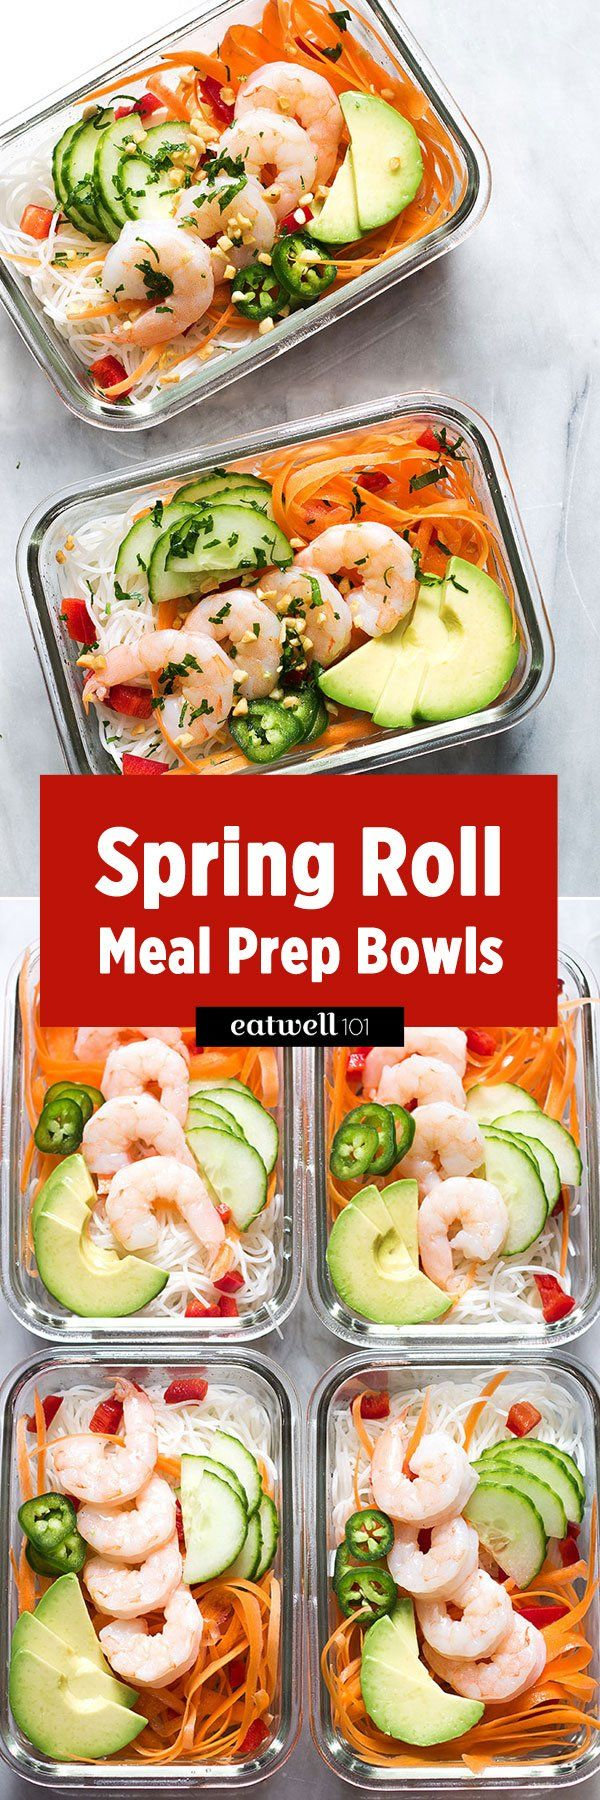 Spring Roll Meal Prep Bowls - No time for a full meal prep? No matter how busy life gets, these make-ahead Spring Roll Meal Prep Bowls are easy to put together and filling enough to pass for a regular meal!